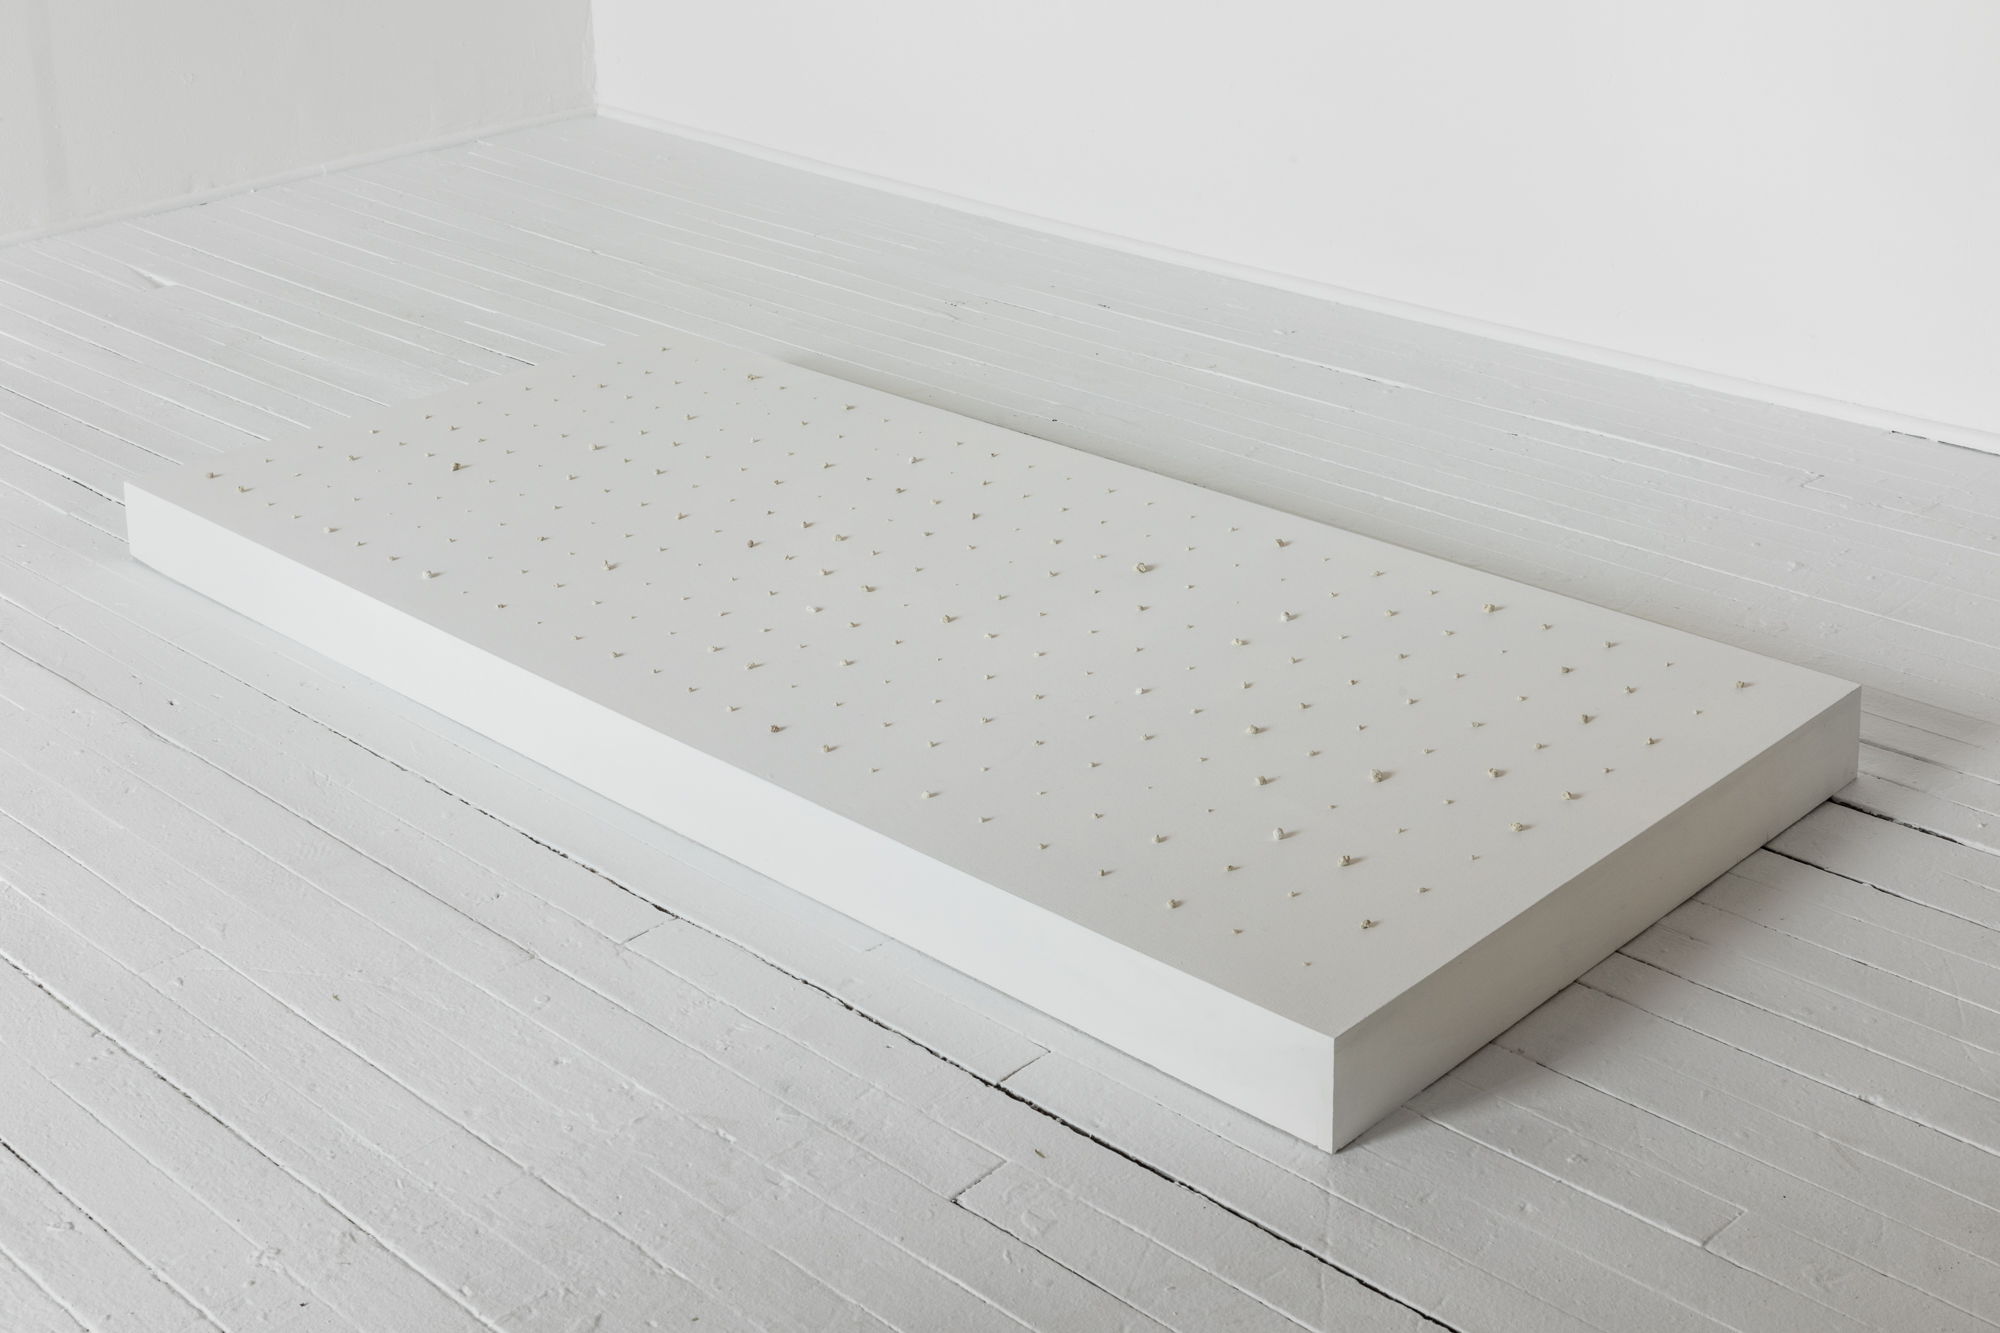 """Soo Shin\ A Collection of Tears 2012-Present\ tears, concrete, wood, primer\ platform h3"""" w65"""" d 30"""", tear approximately ¼"""" in diameter\ 2012-present (Photo credit Bar4000/Evan Jenkins)"""